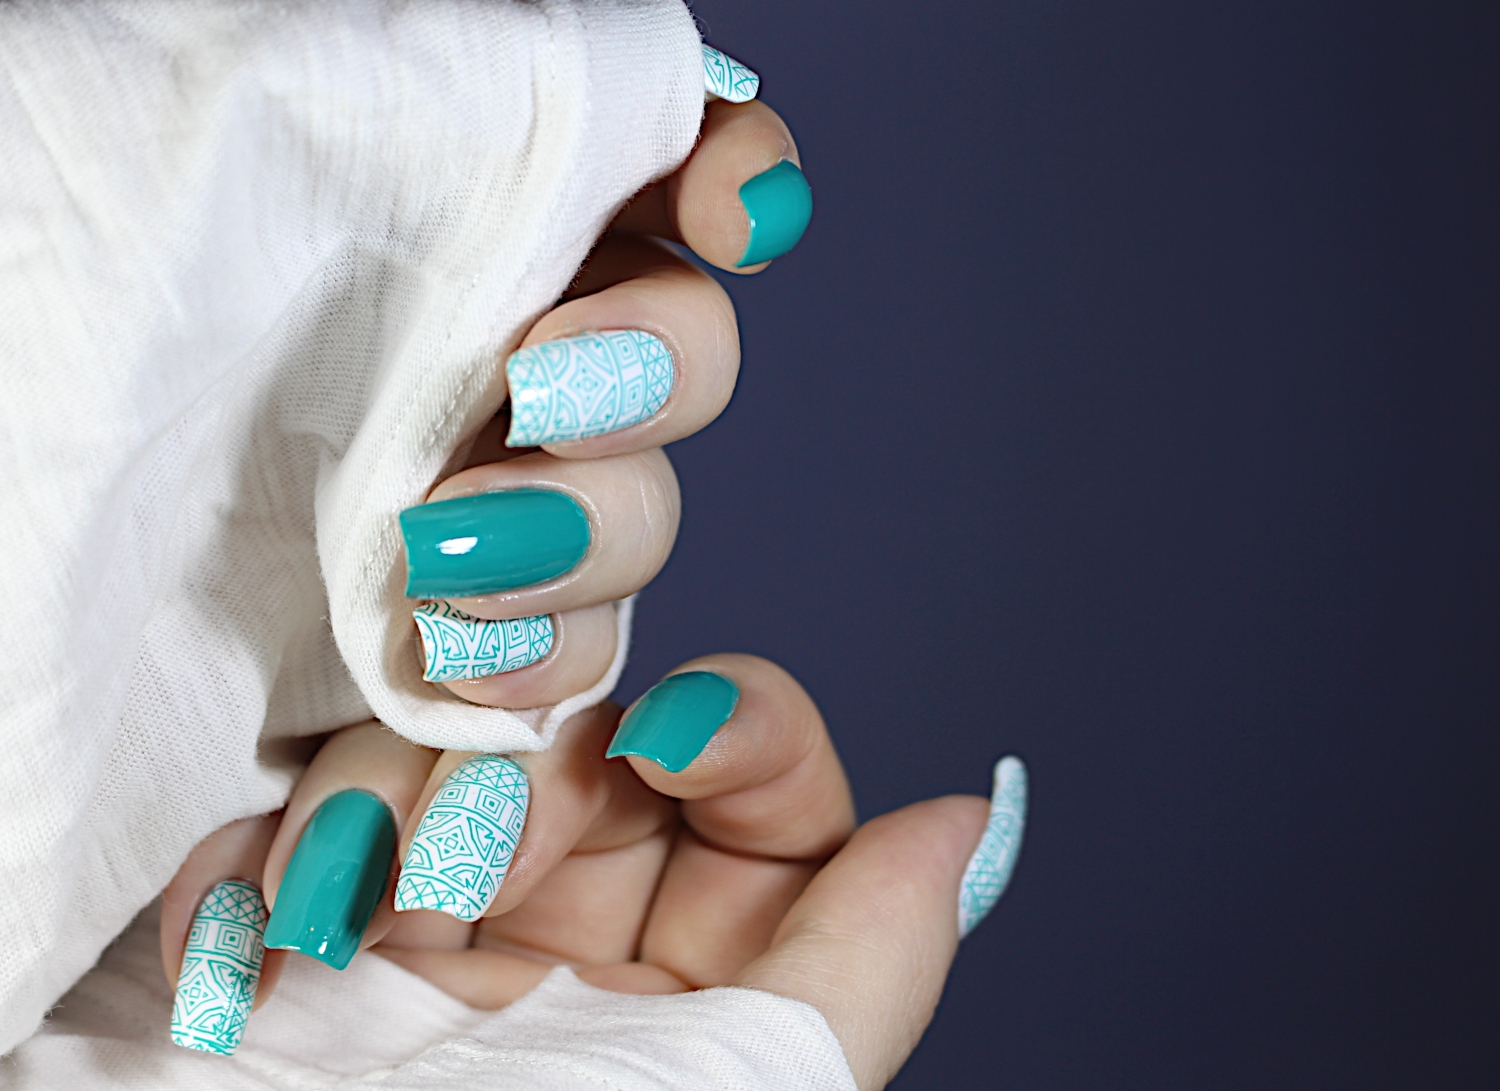 Arabian night  inspired nail manicure by blogger Liz Breygel